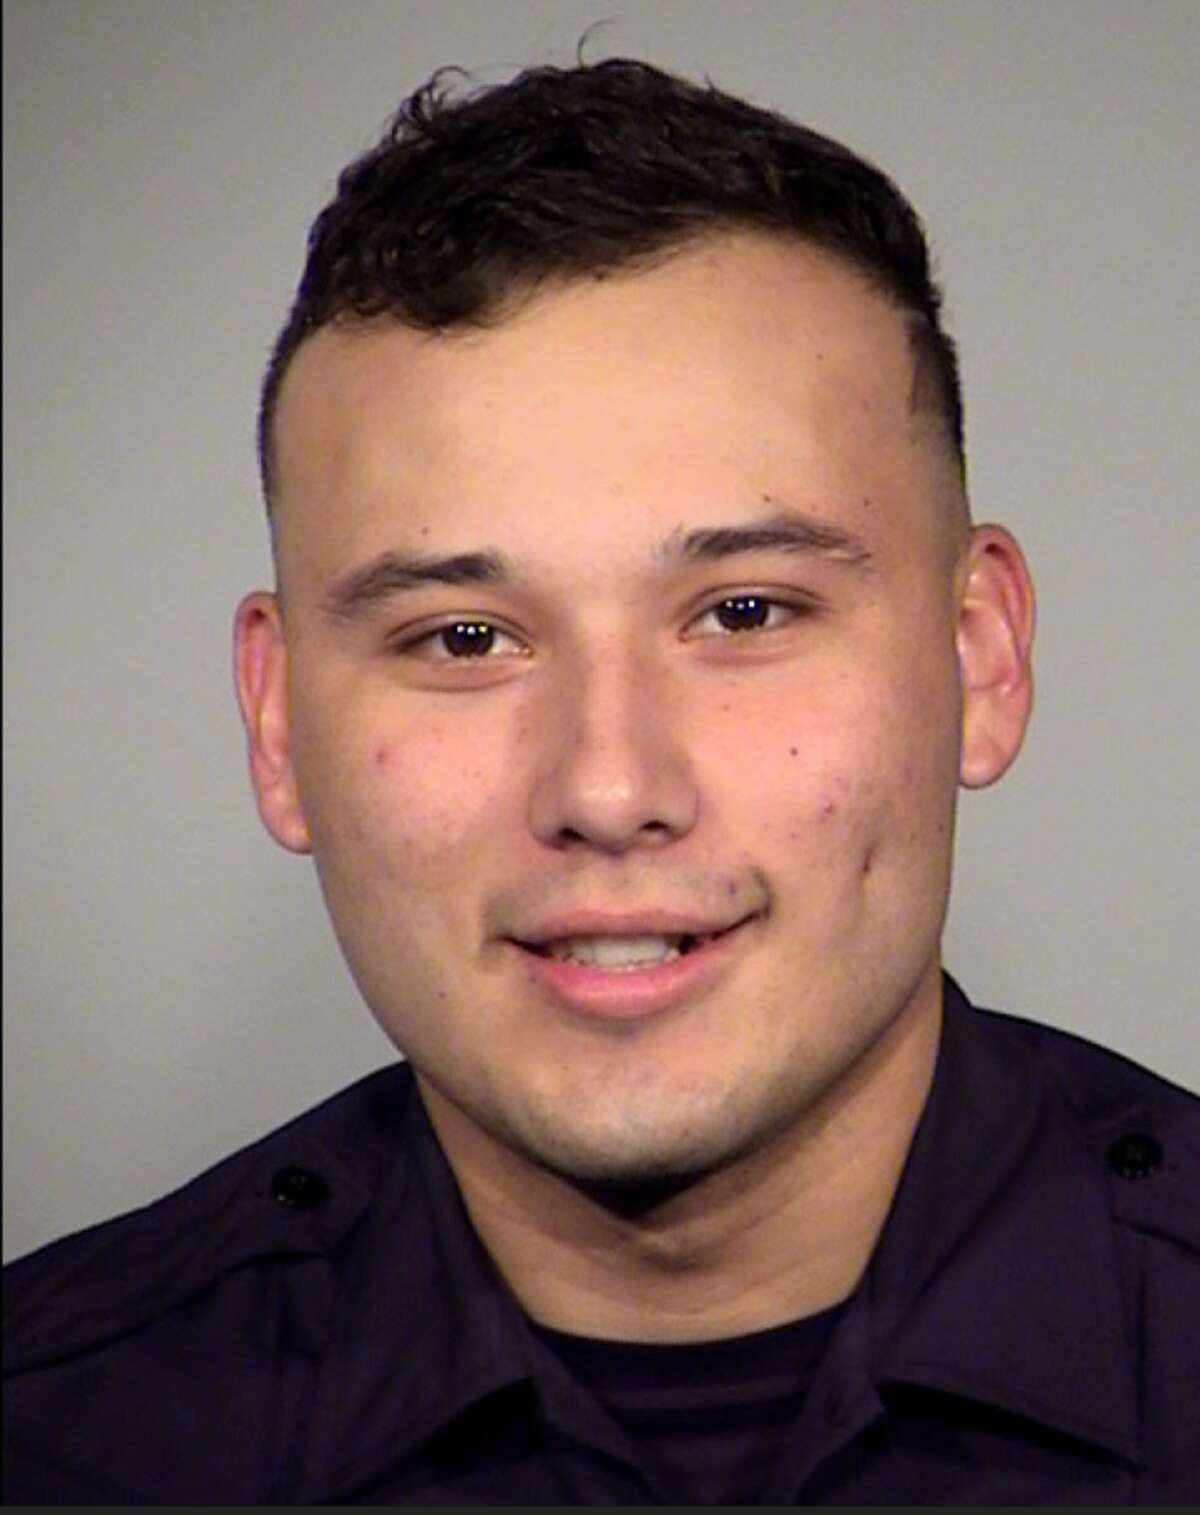 San Antonio Police Officer Rafael Hernandez III, 26, was arrested for suspicion of DWI after he was caught driving 100 mph on Loop 410, SAPD said.